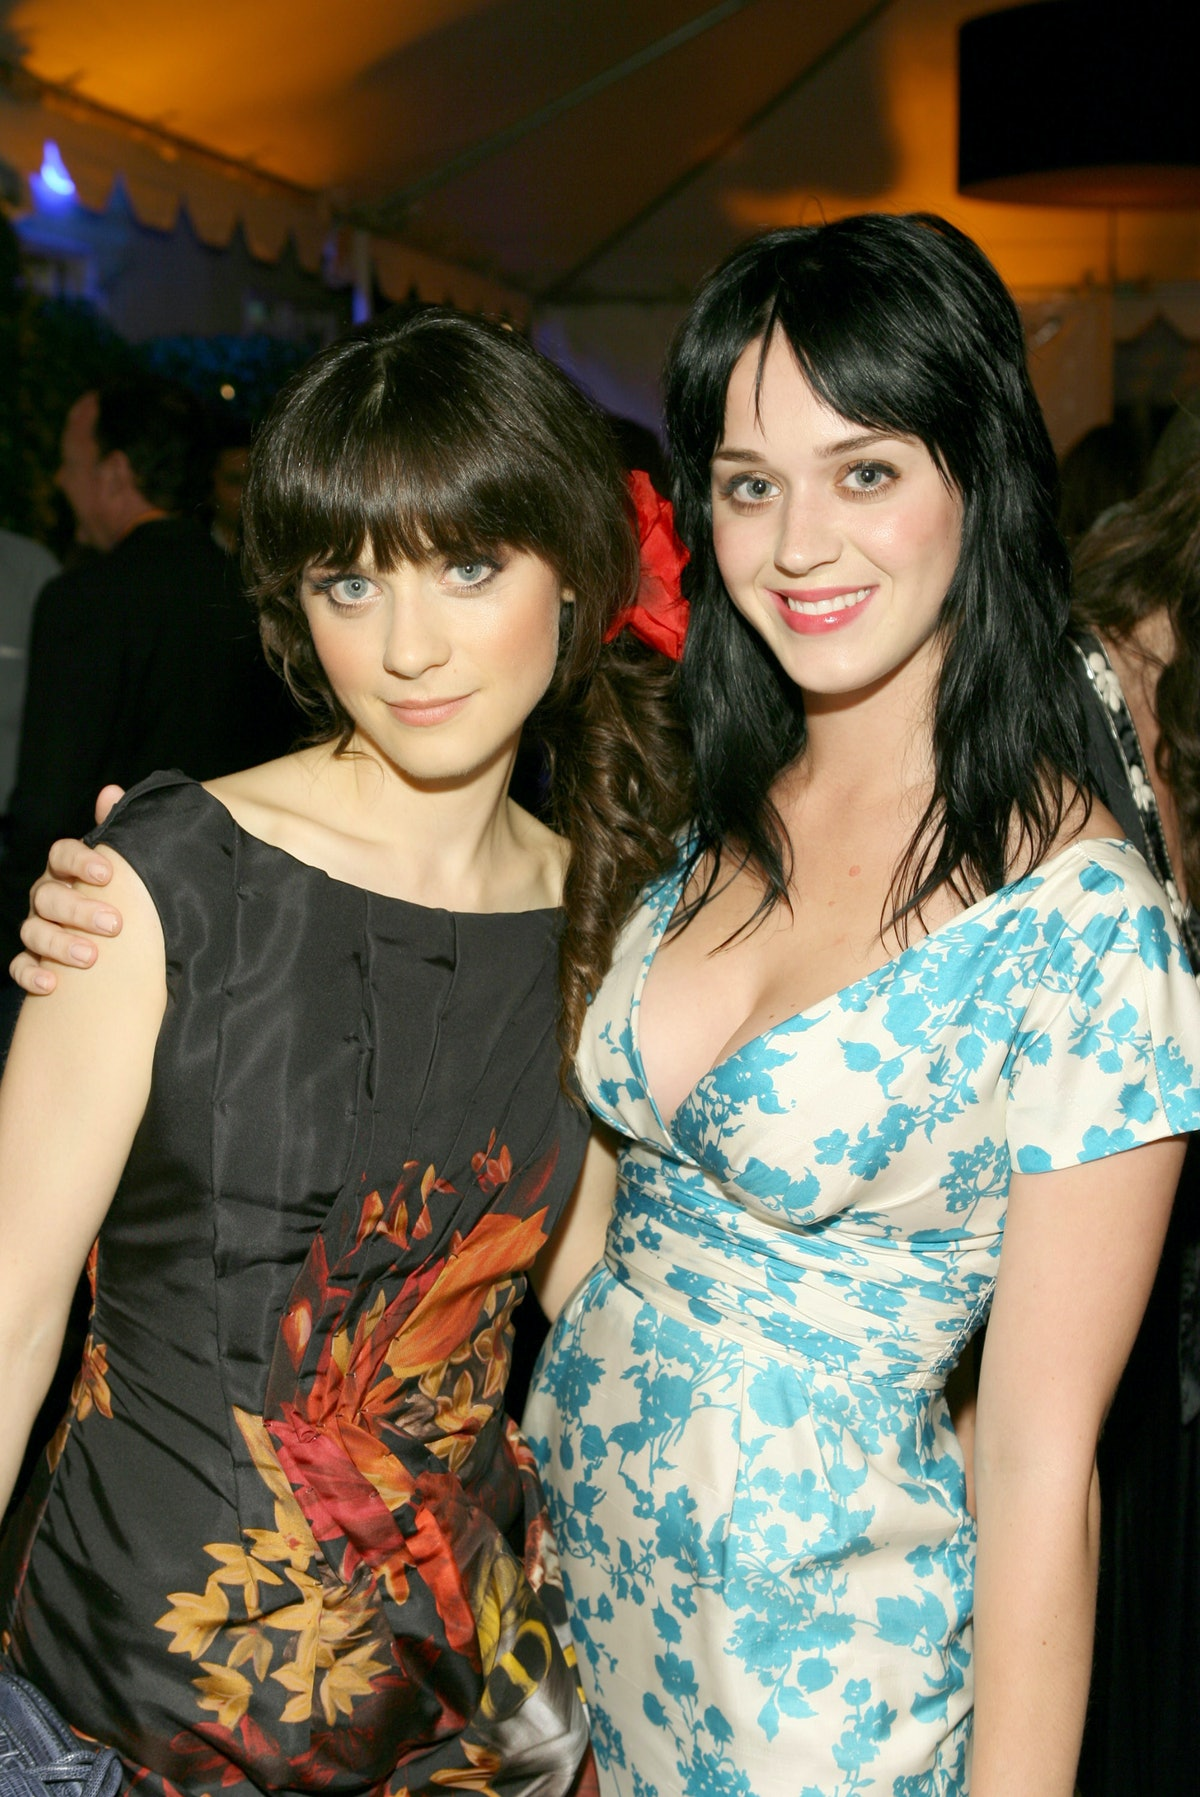 Katy Perry and Zooey Deschanel, who look shockingly similar, pose for a photo at a party.